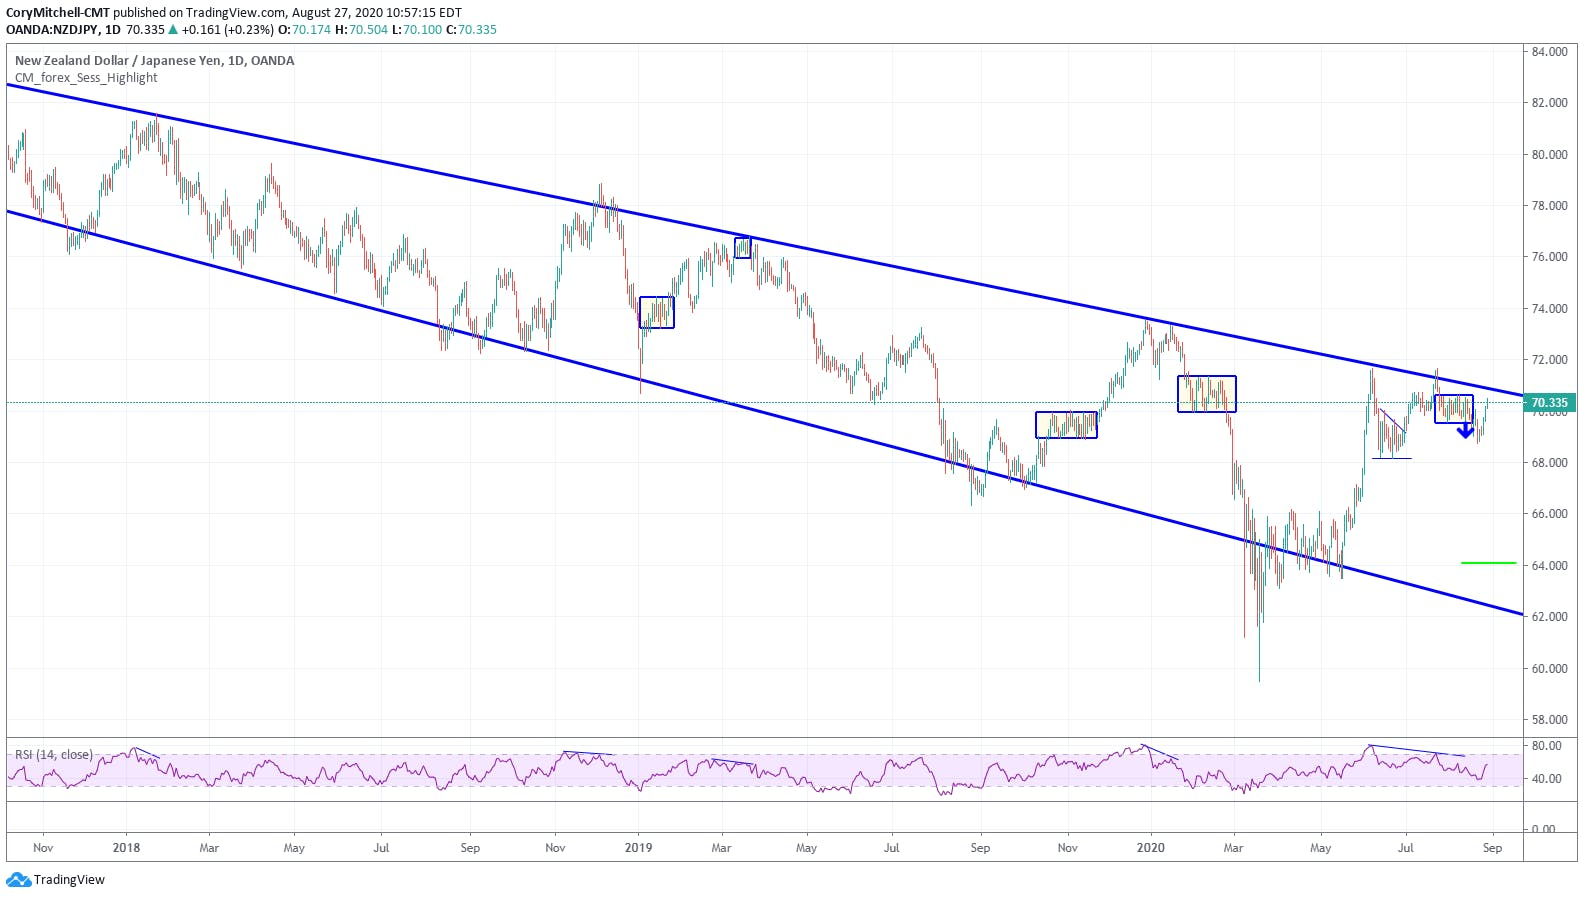 NZDJPY forming potential topping pattern near top of long-term descending channel Aug. 27 2020